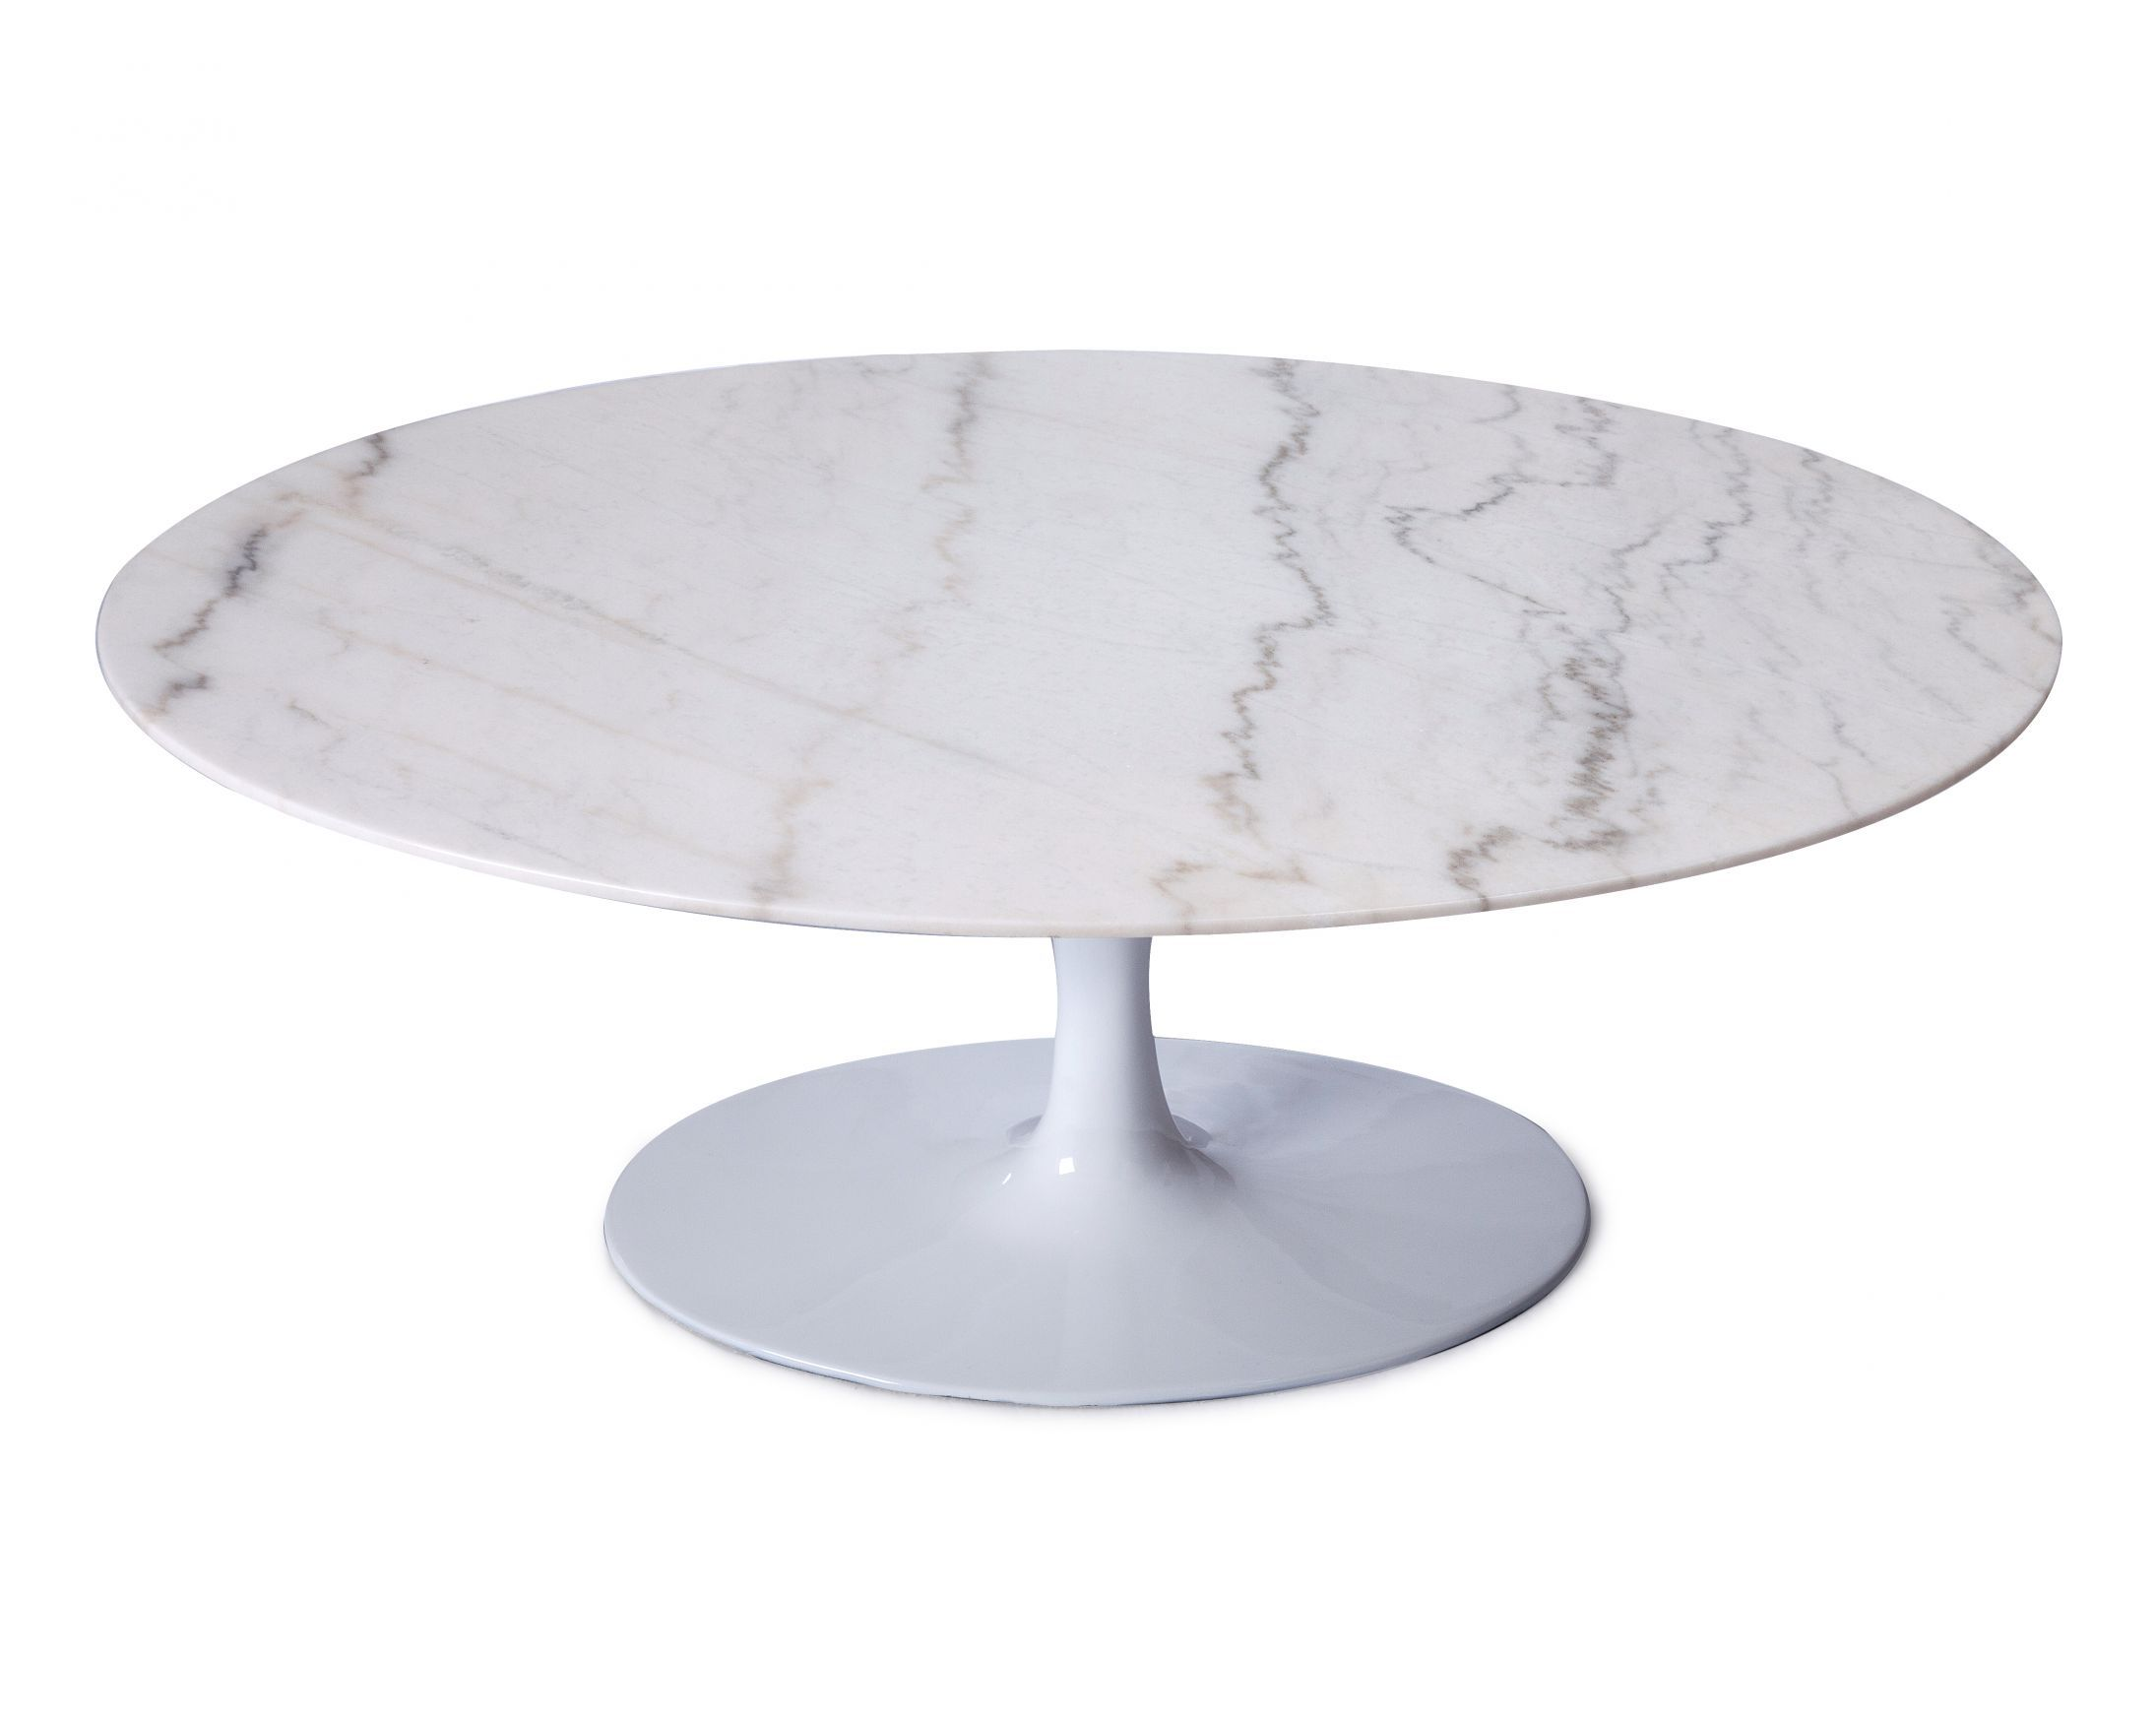 Tulip Coffee Table Oval Calacatta gold marble Calacatta gold